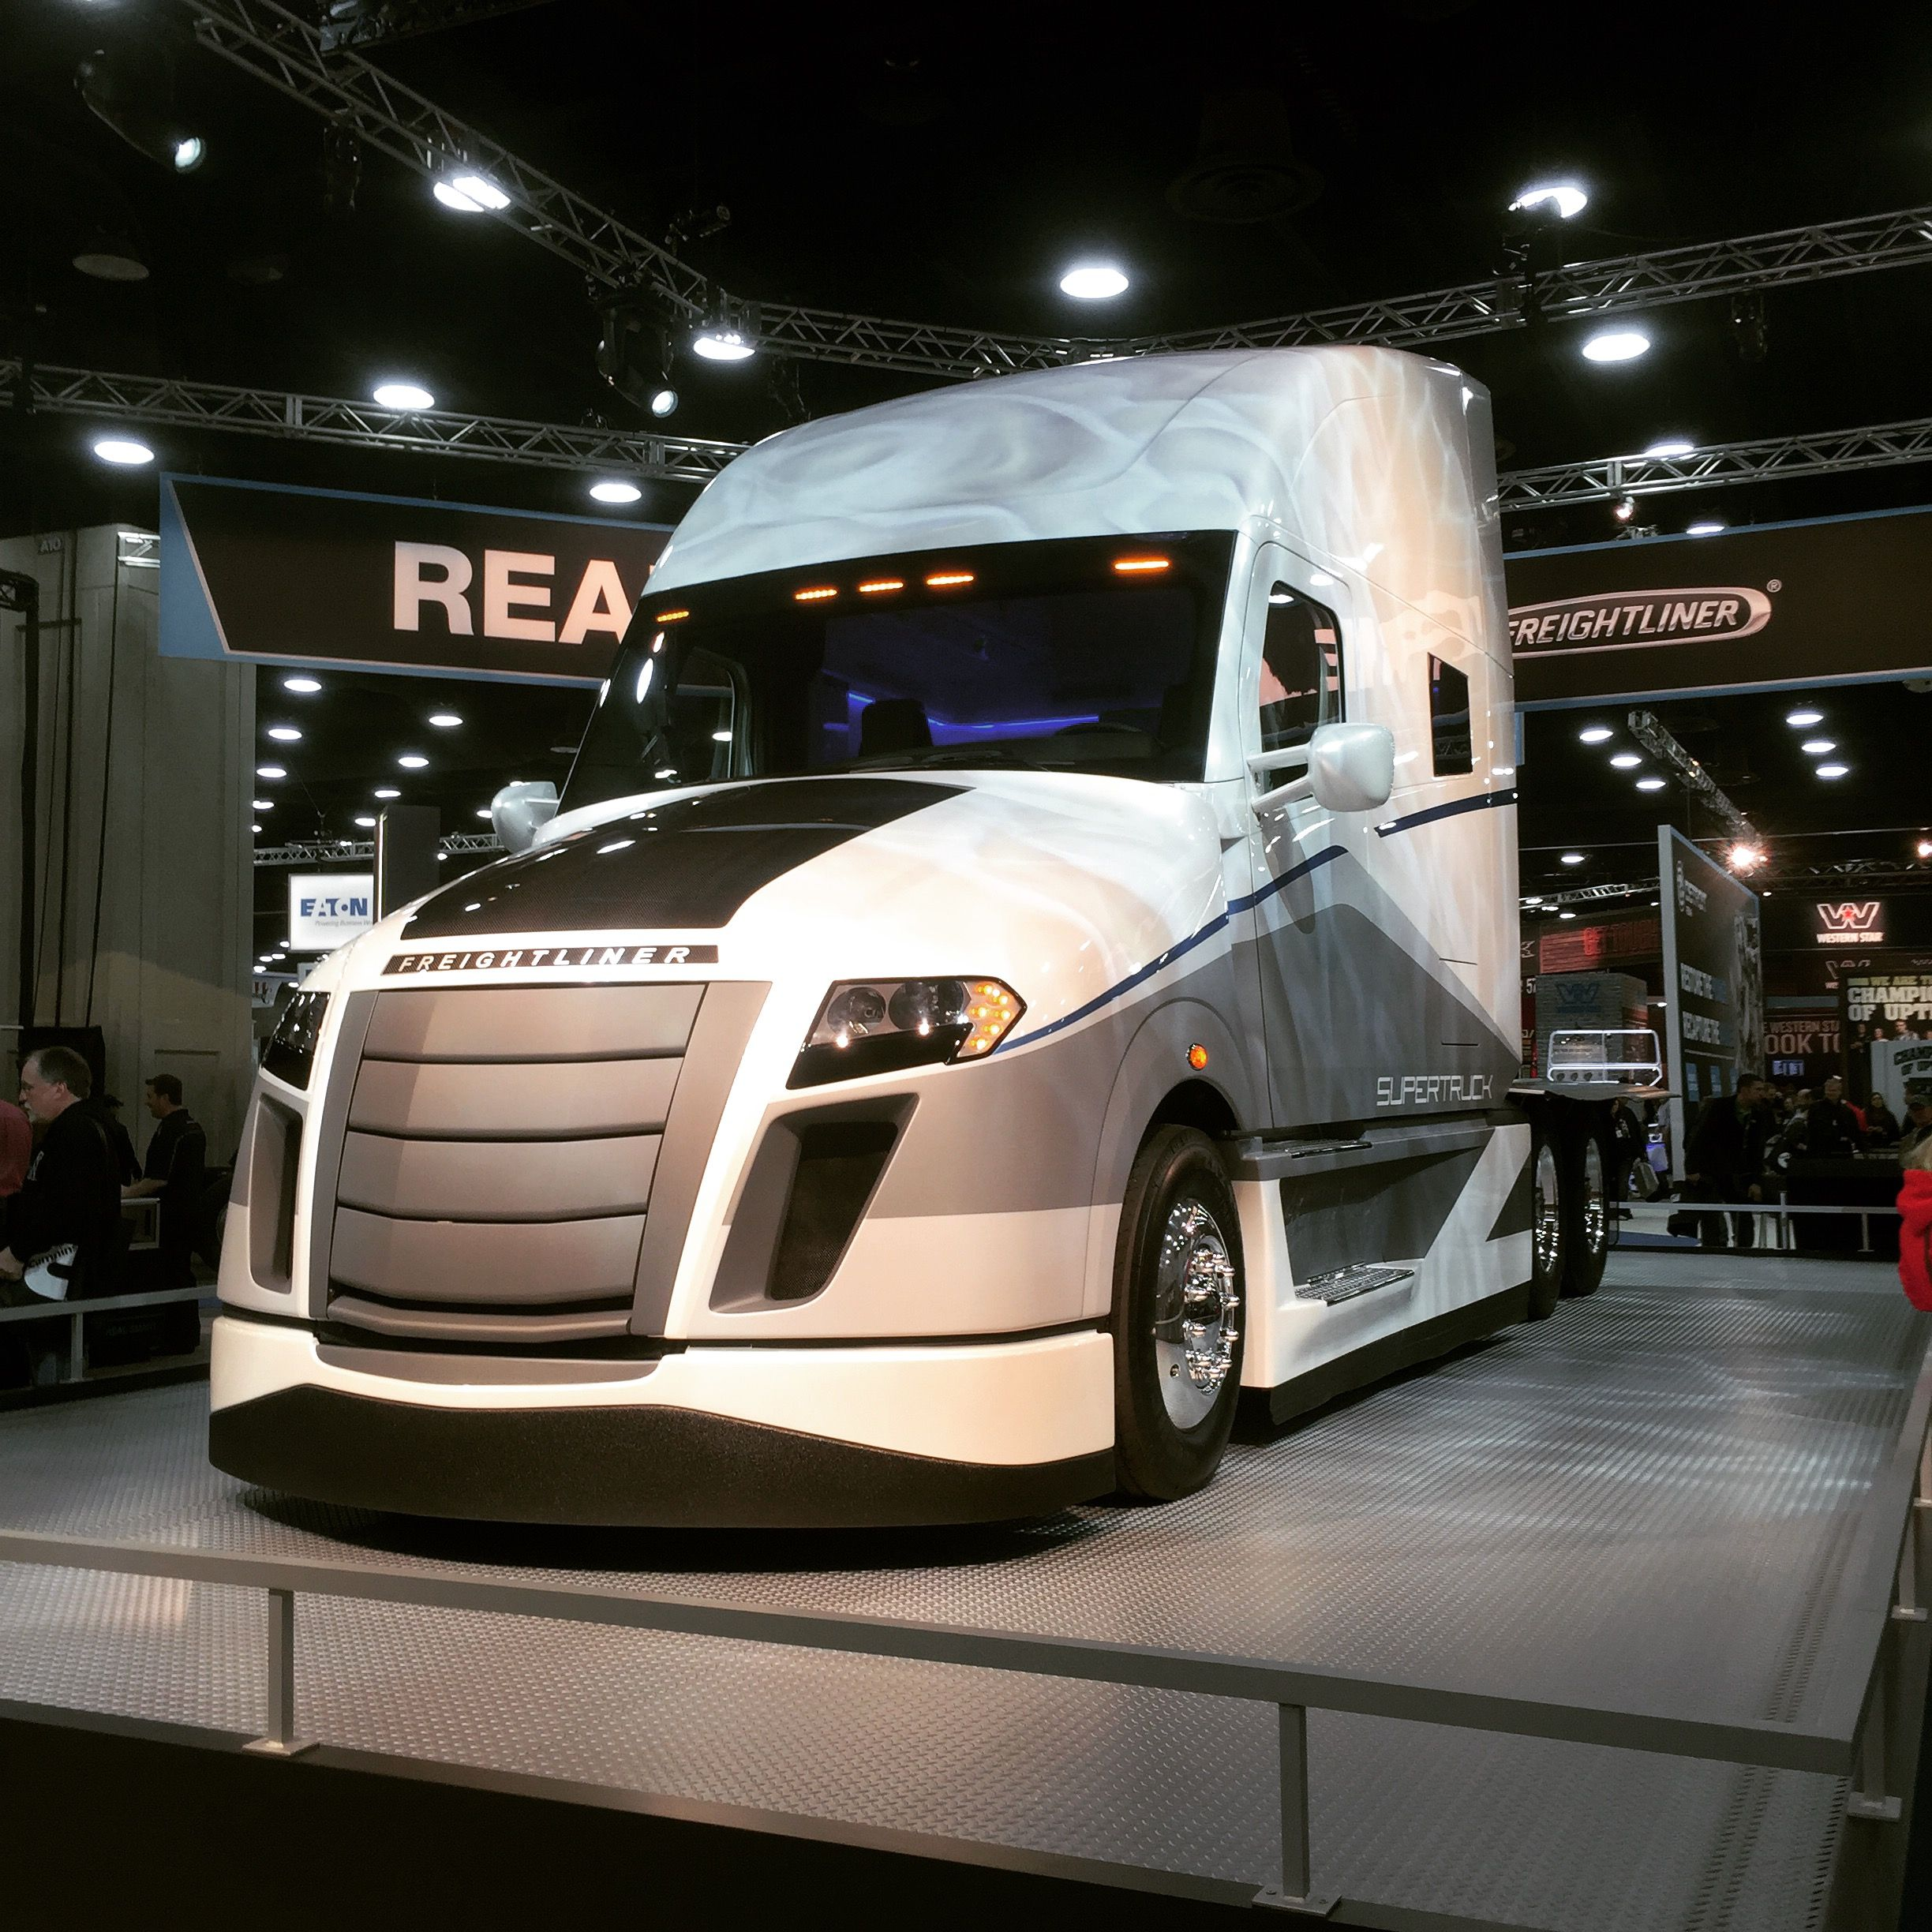 race car meets luxury rv meets trucking this is the truck of the future trucking trucks. Black Bedroom Furniture Sets. Home Design Ideas